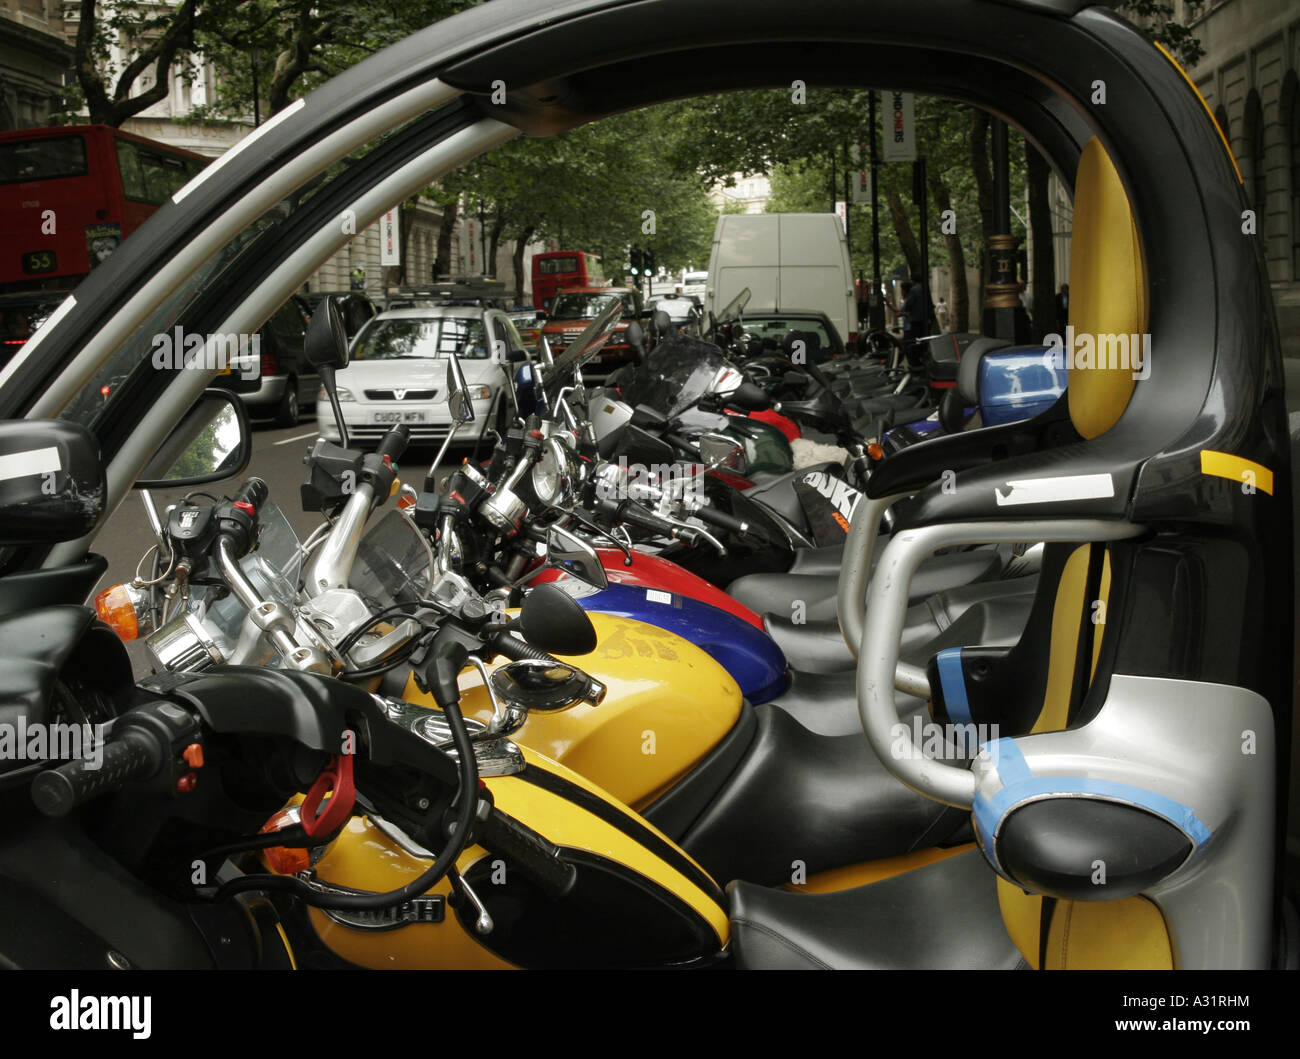 Lined up motor cycles. - Stock Image